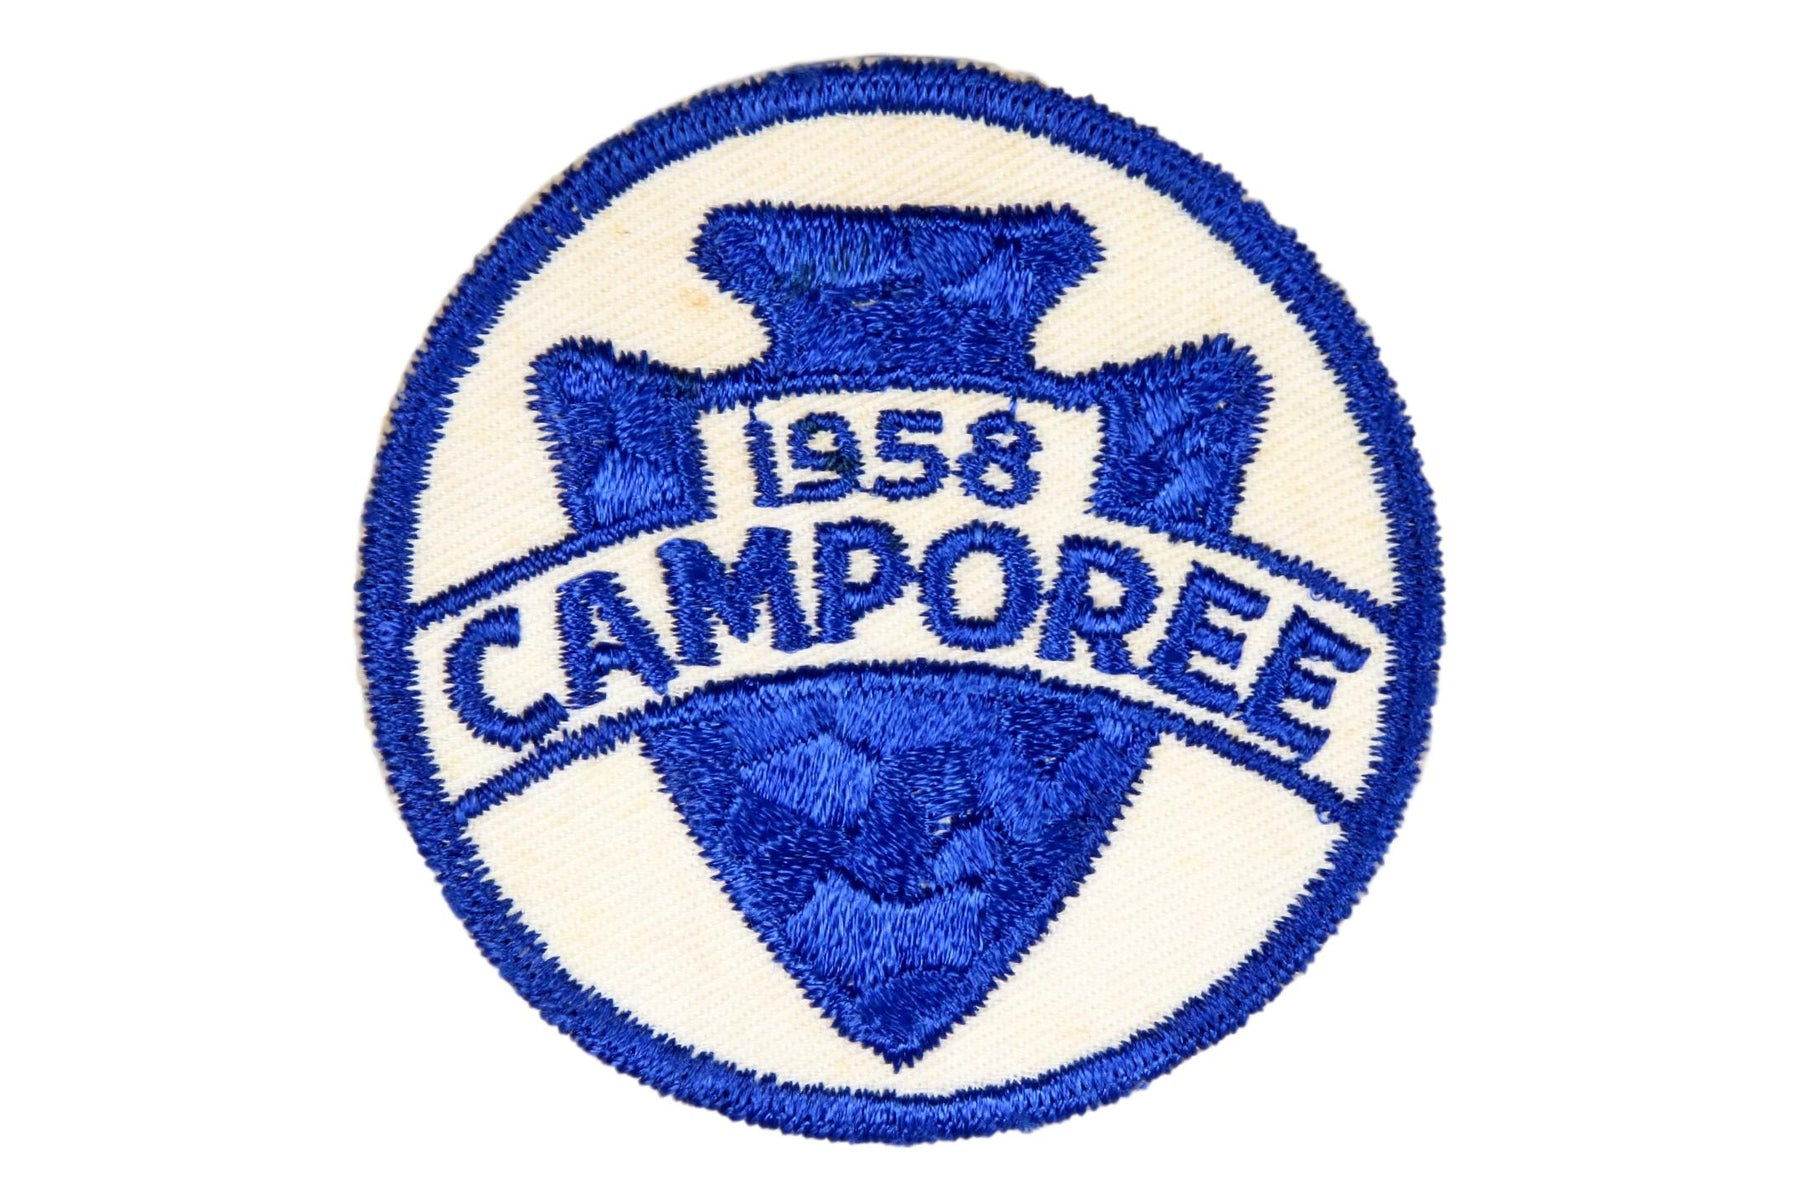 1958 Camporee Patch